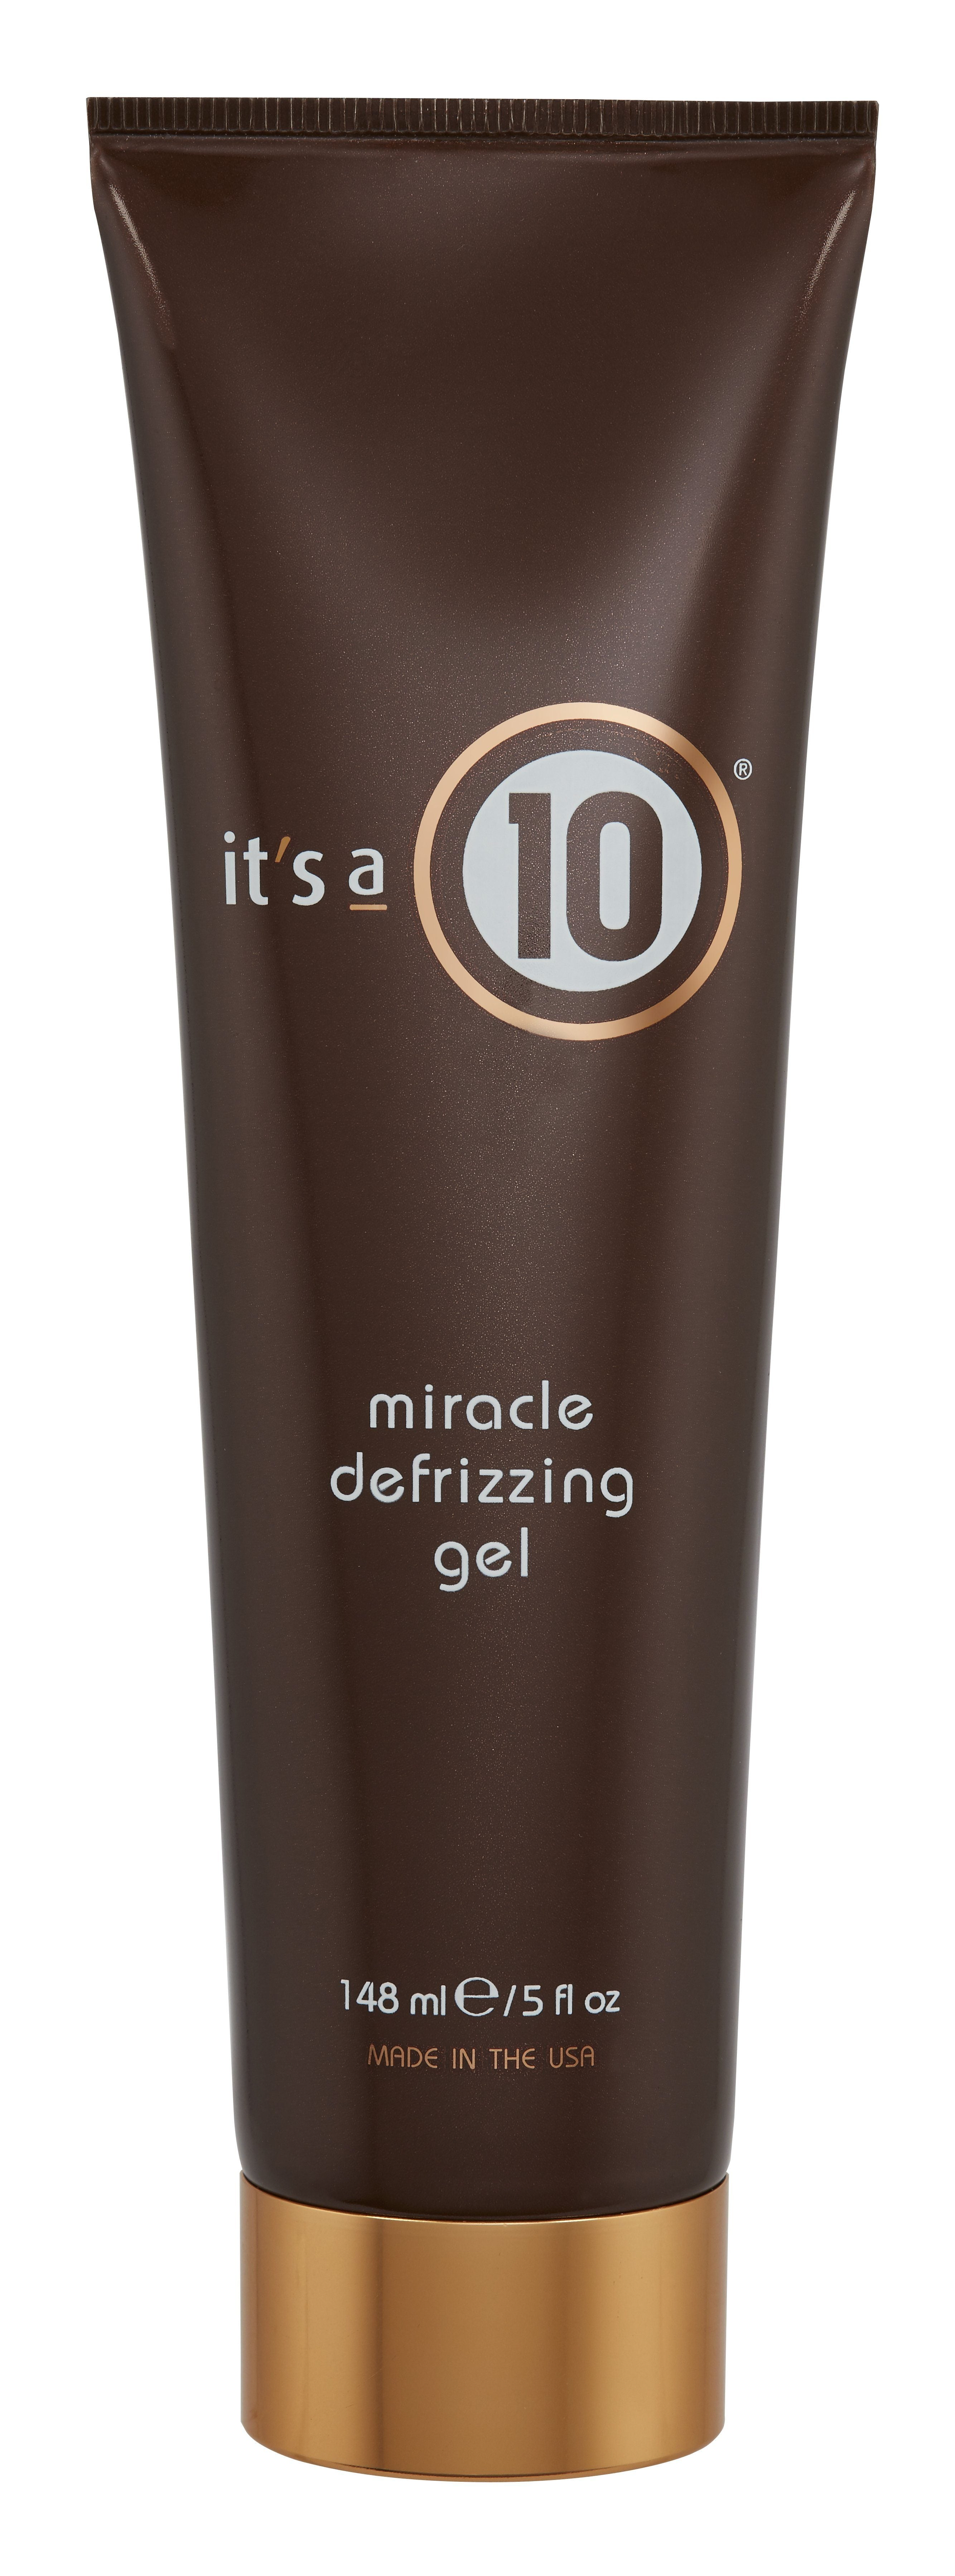 It's a 10 Miracle Defrizzing Styling Gel